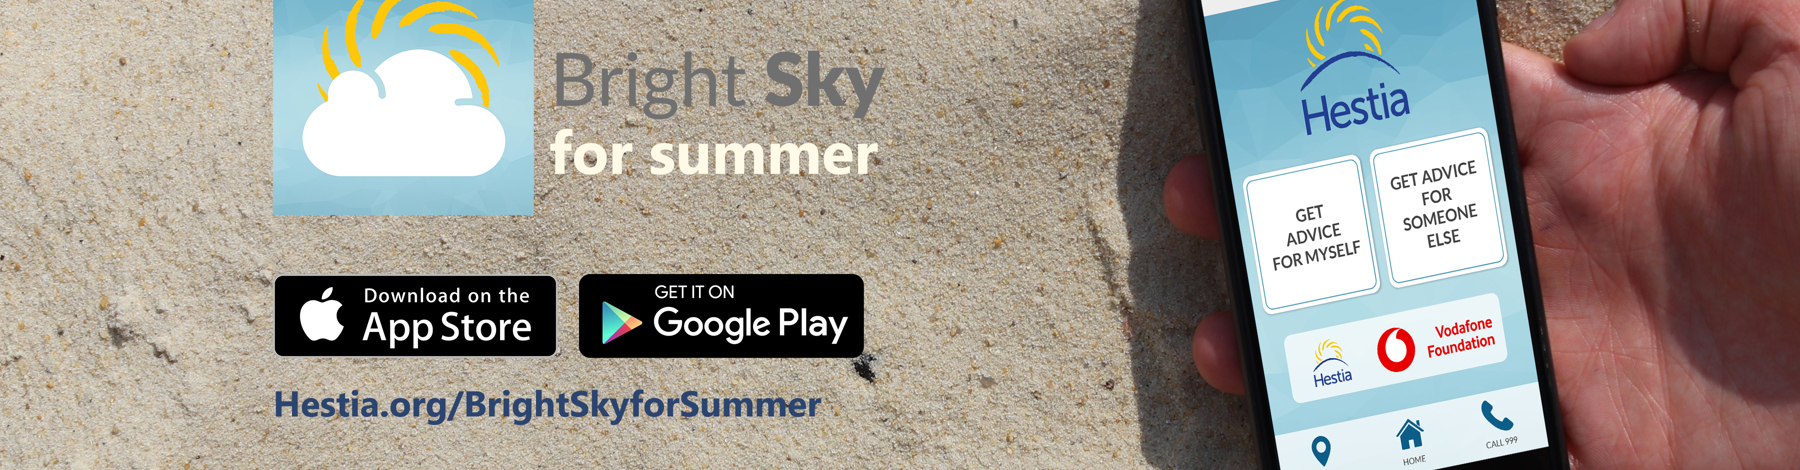 Download Bright Sky today on iOS and Android